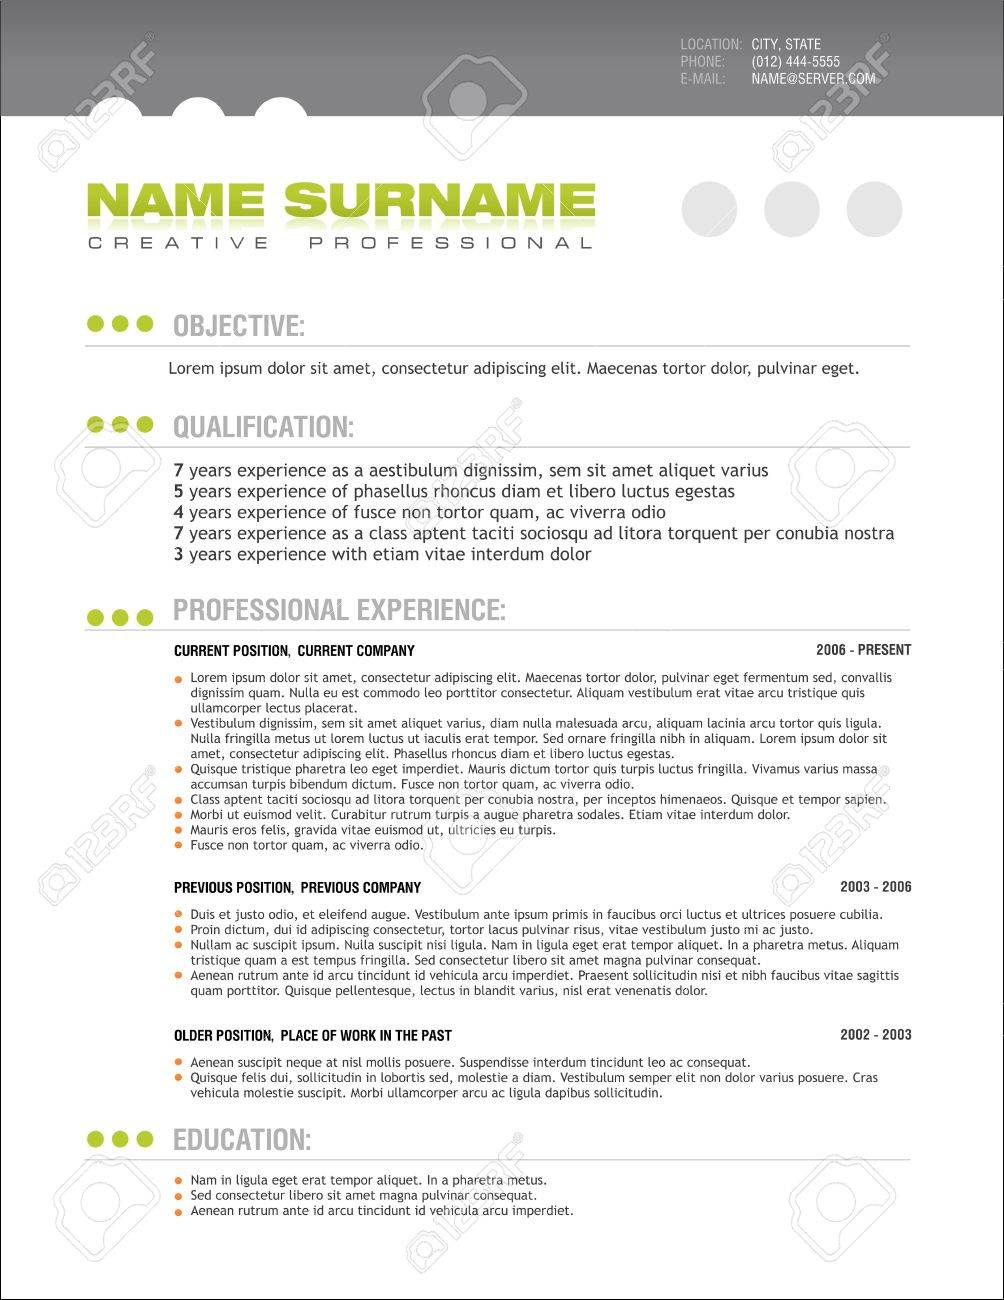 a template of professionally designed resume royalty cliparts a template of professionally designed resume stock vector 10436891